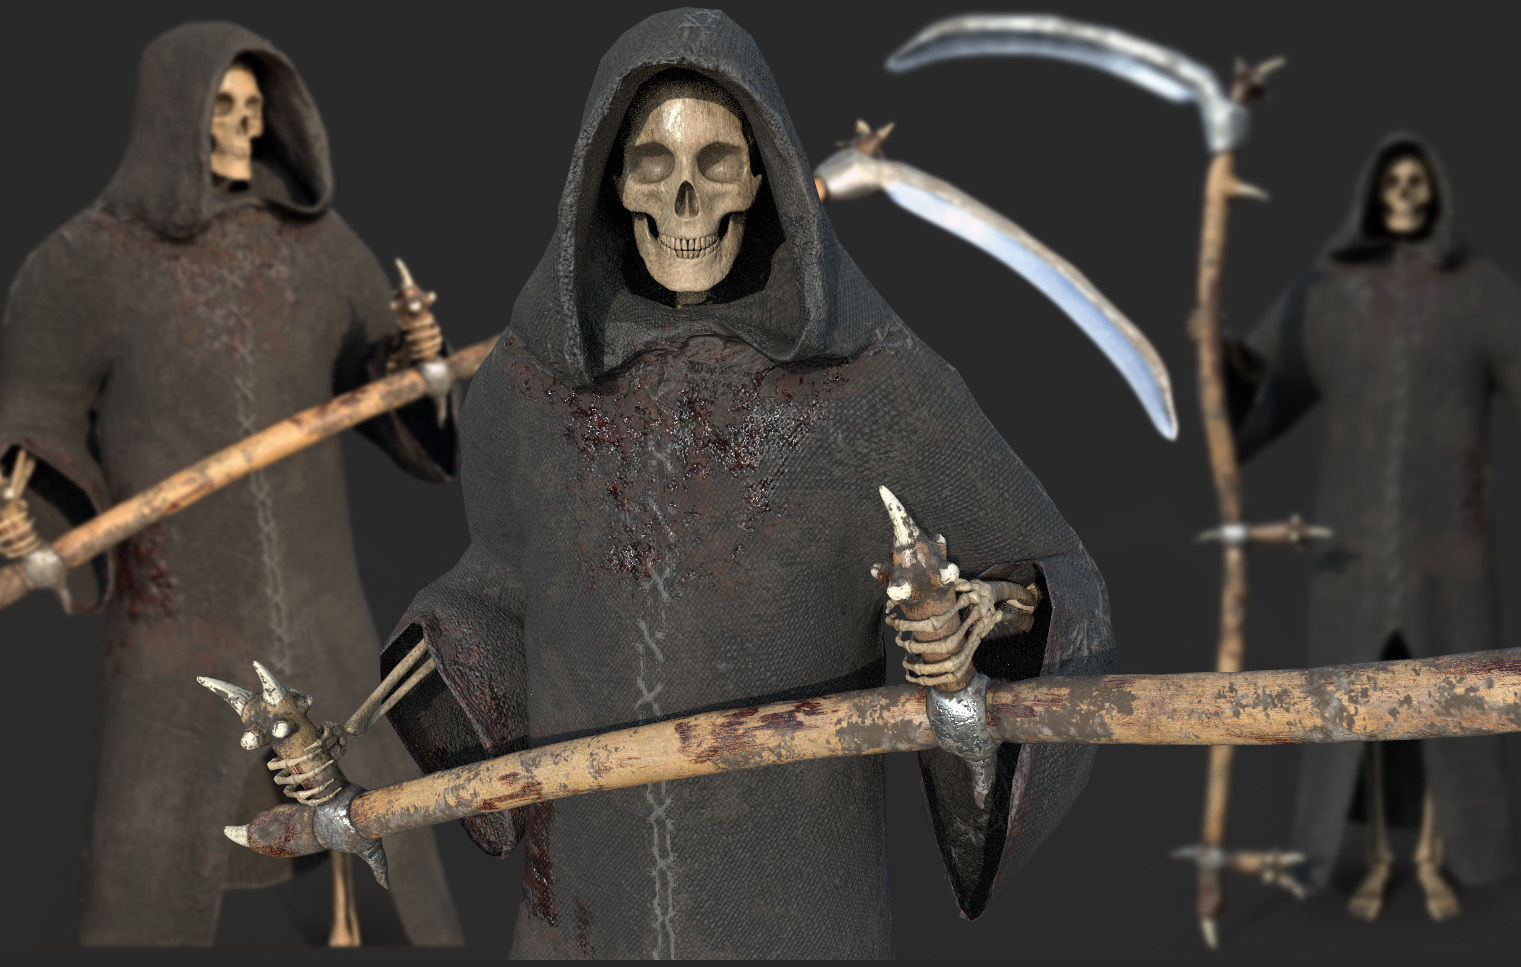 Grim Reaper  Rigged with Scythe